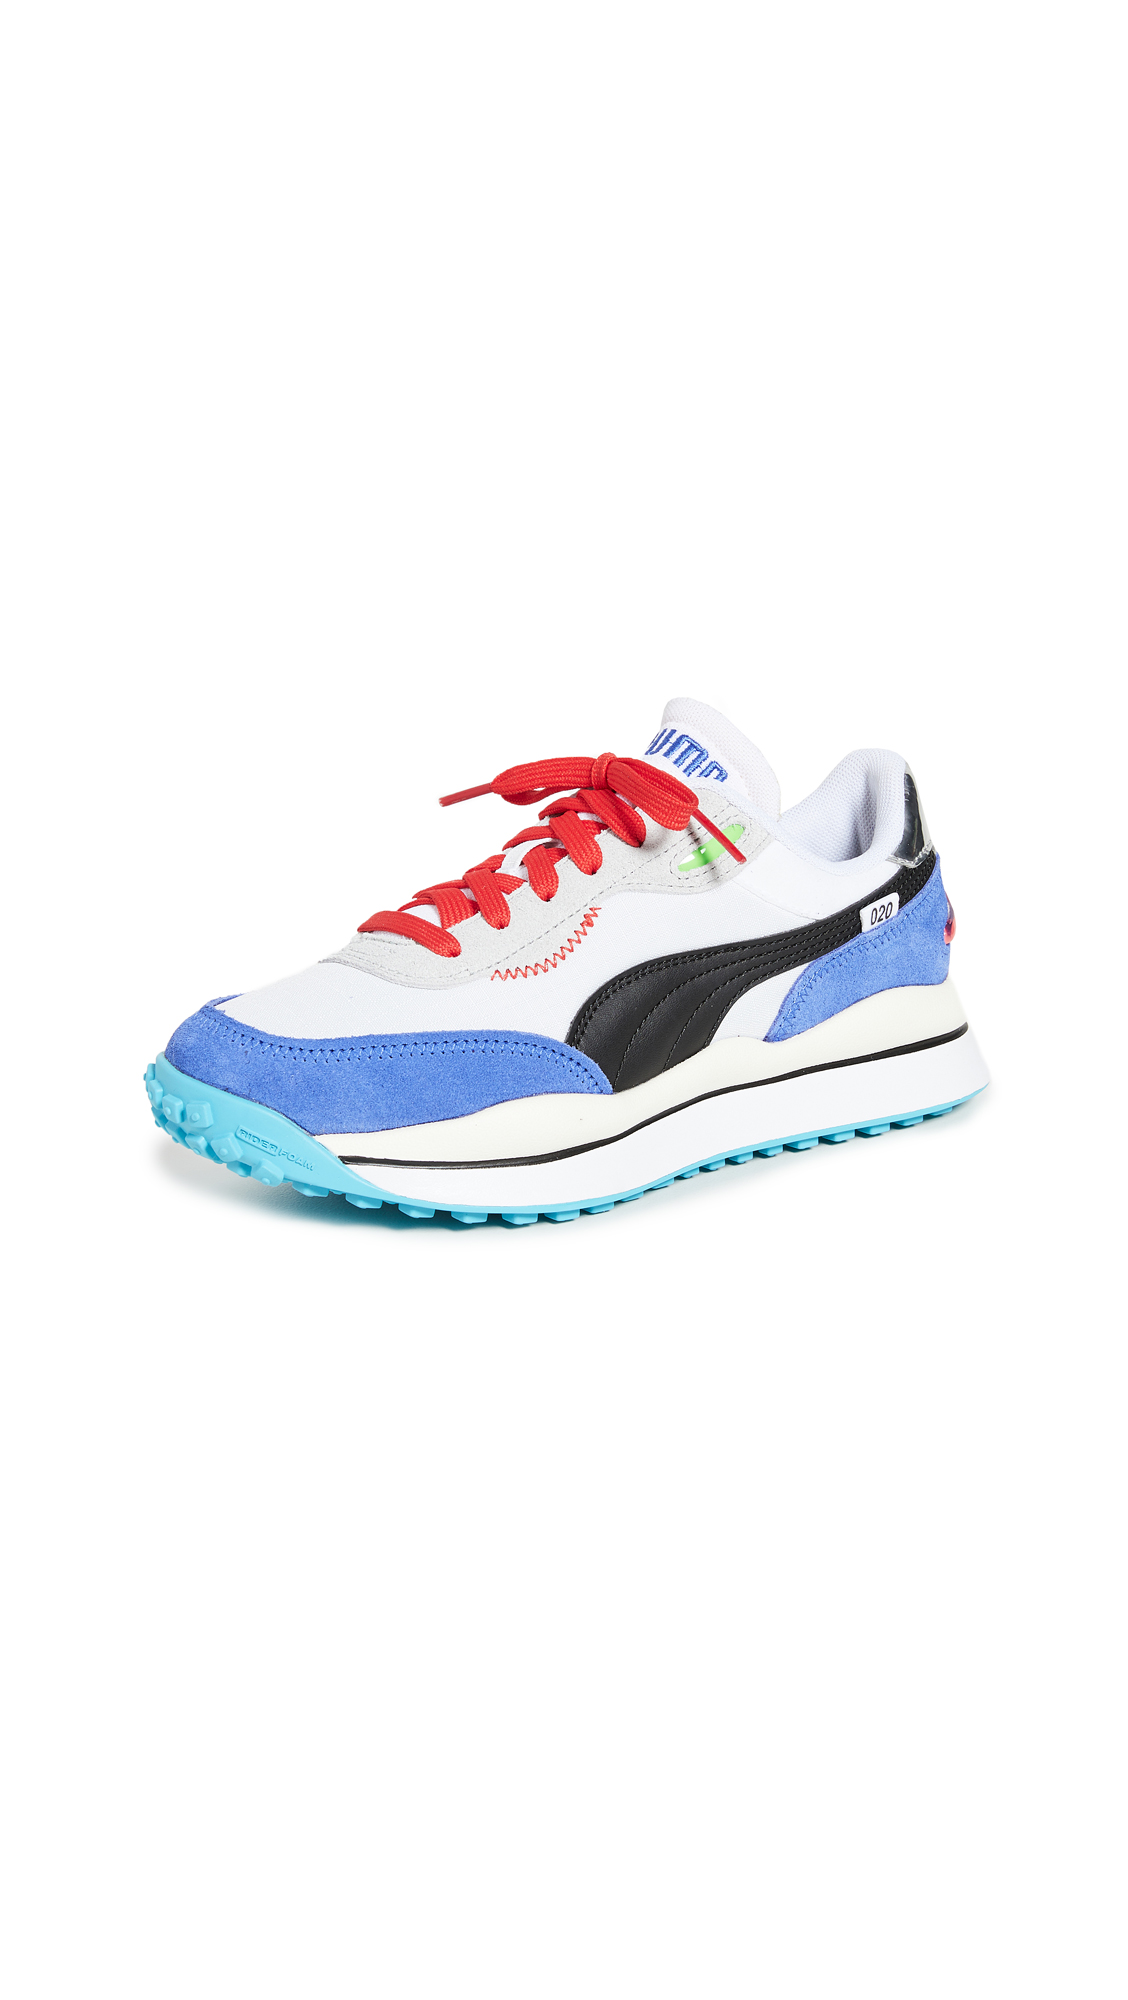 Buy PUMA Rider 020 Ride on Sneakers online, shop PUMA